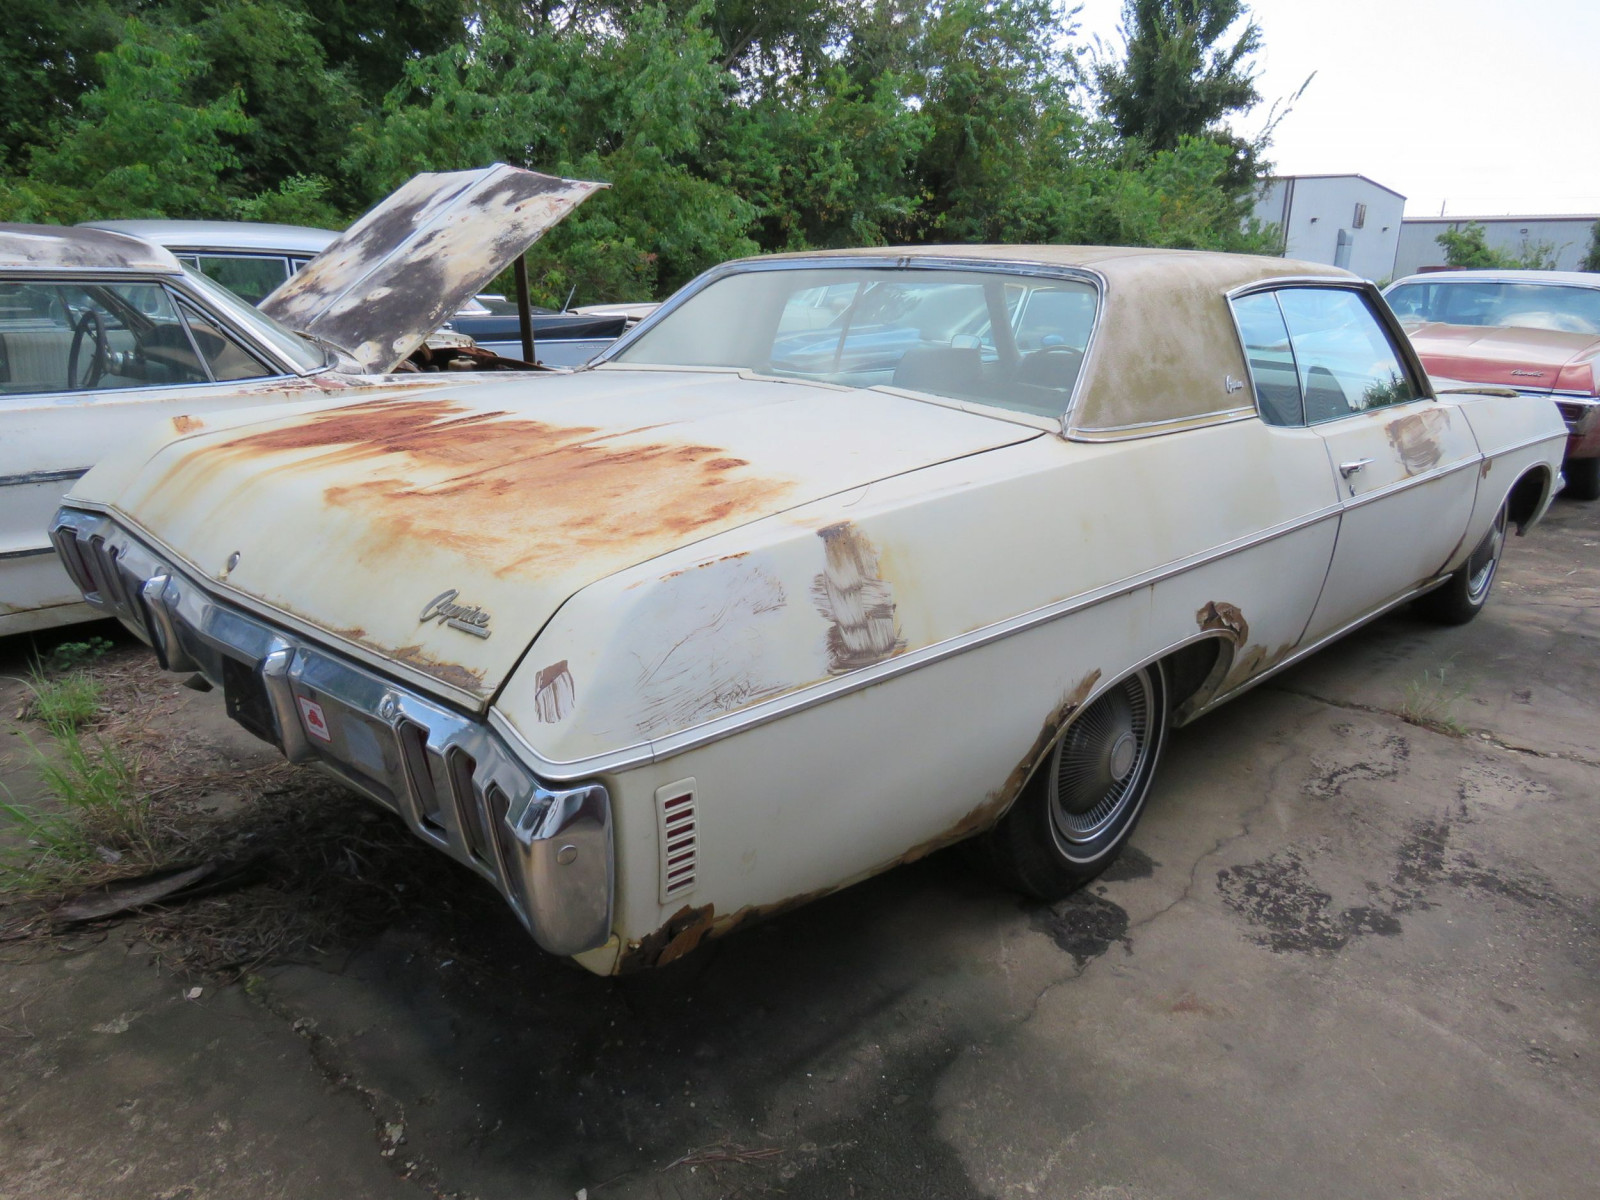 1970 Chevrolet Caprice 2dr HT - Image 5